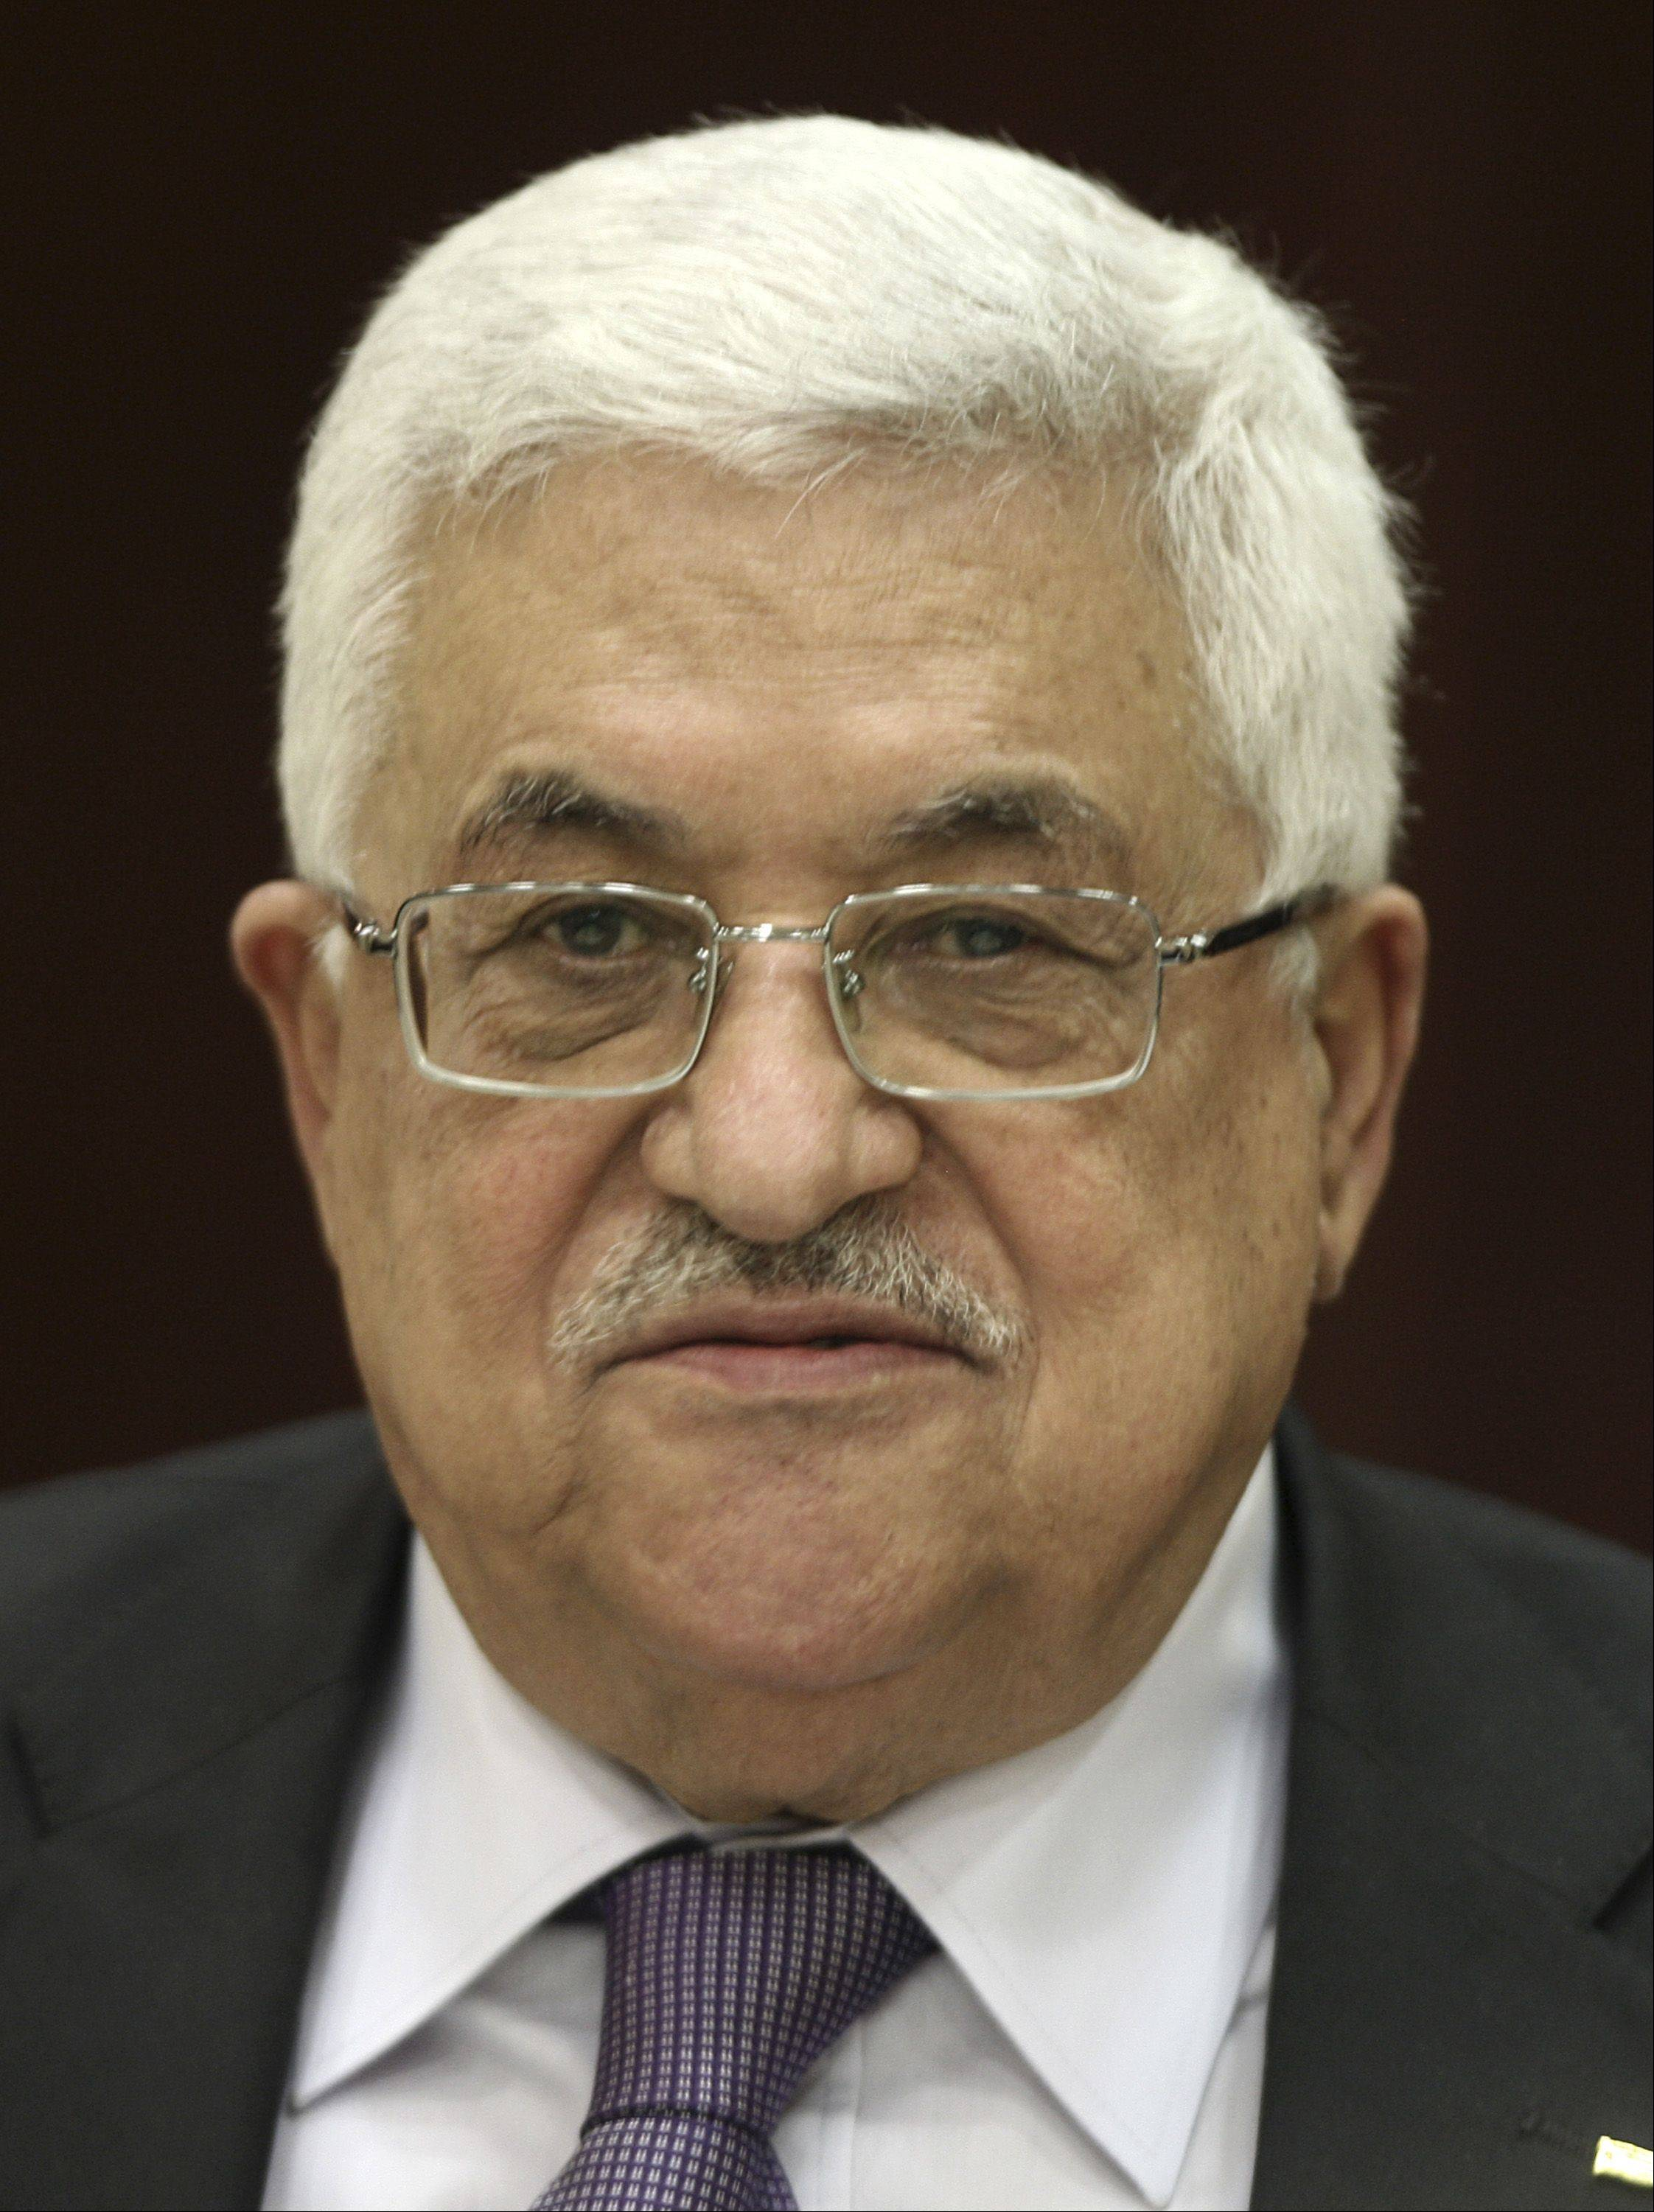 Palestinian President Mahmoud Abbas has publicly suggesting his people would have to relinquish claims to ancestral homes in Israel.